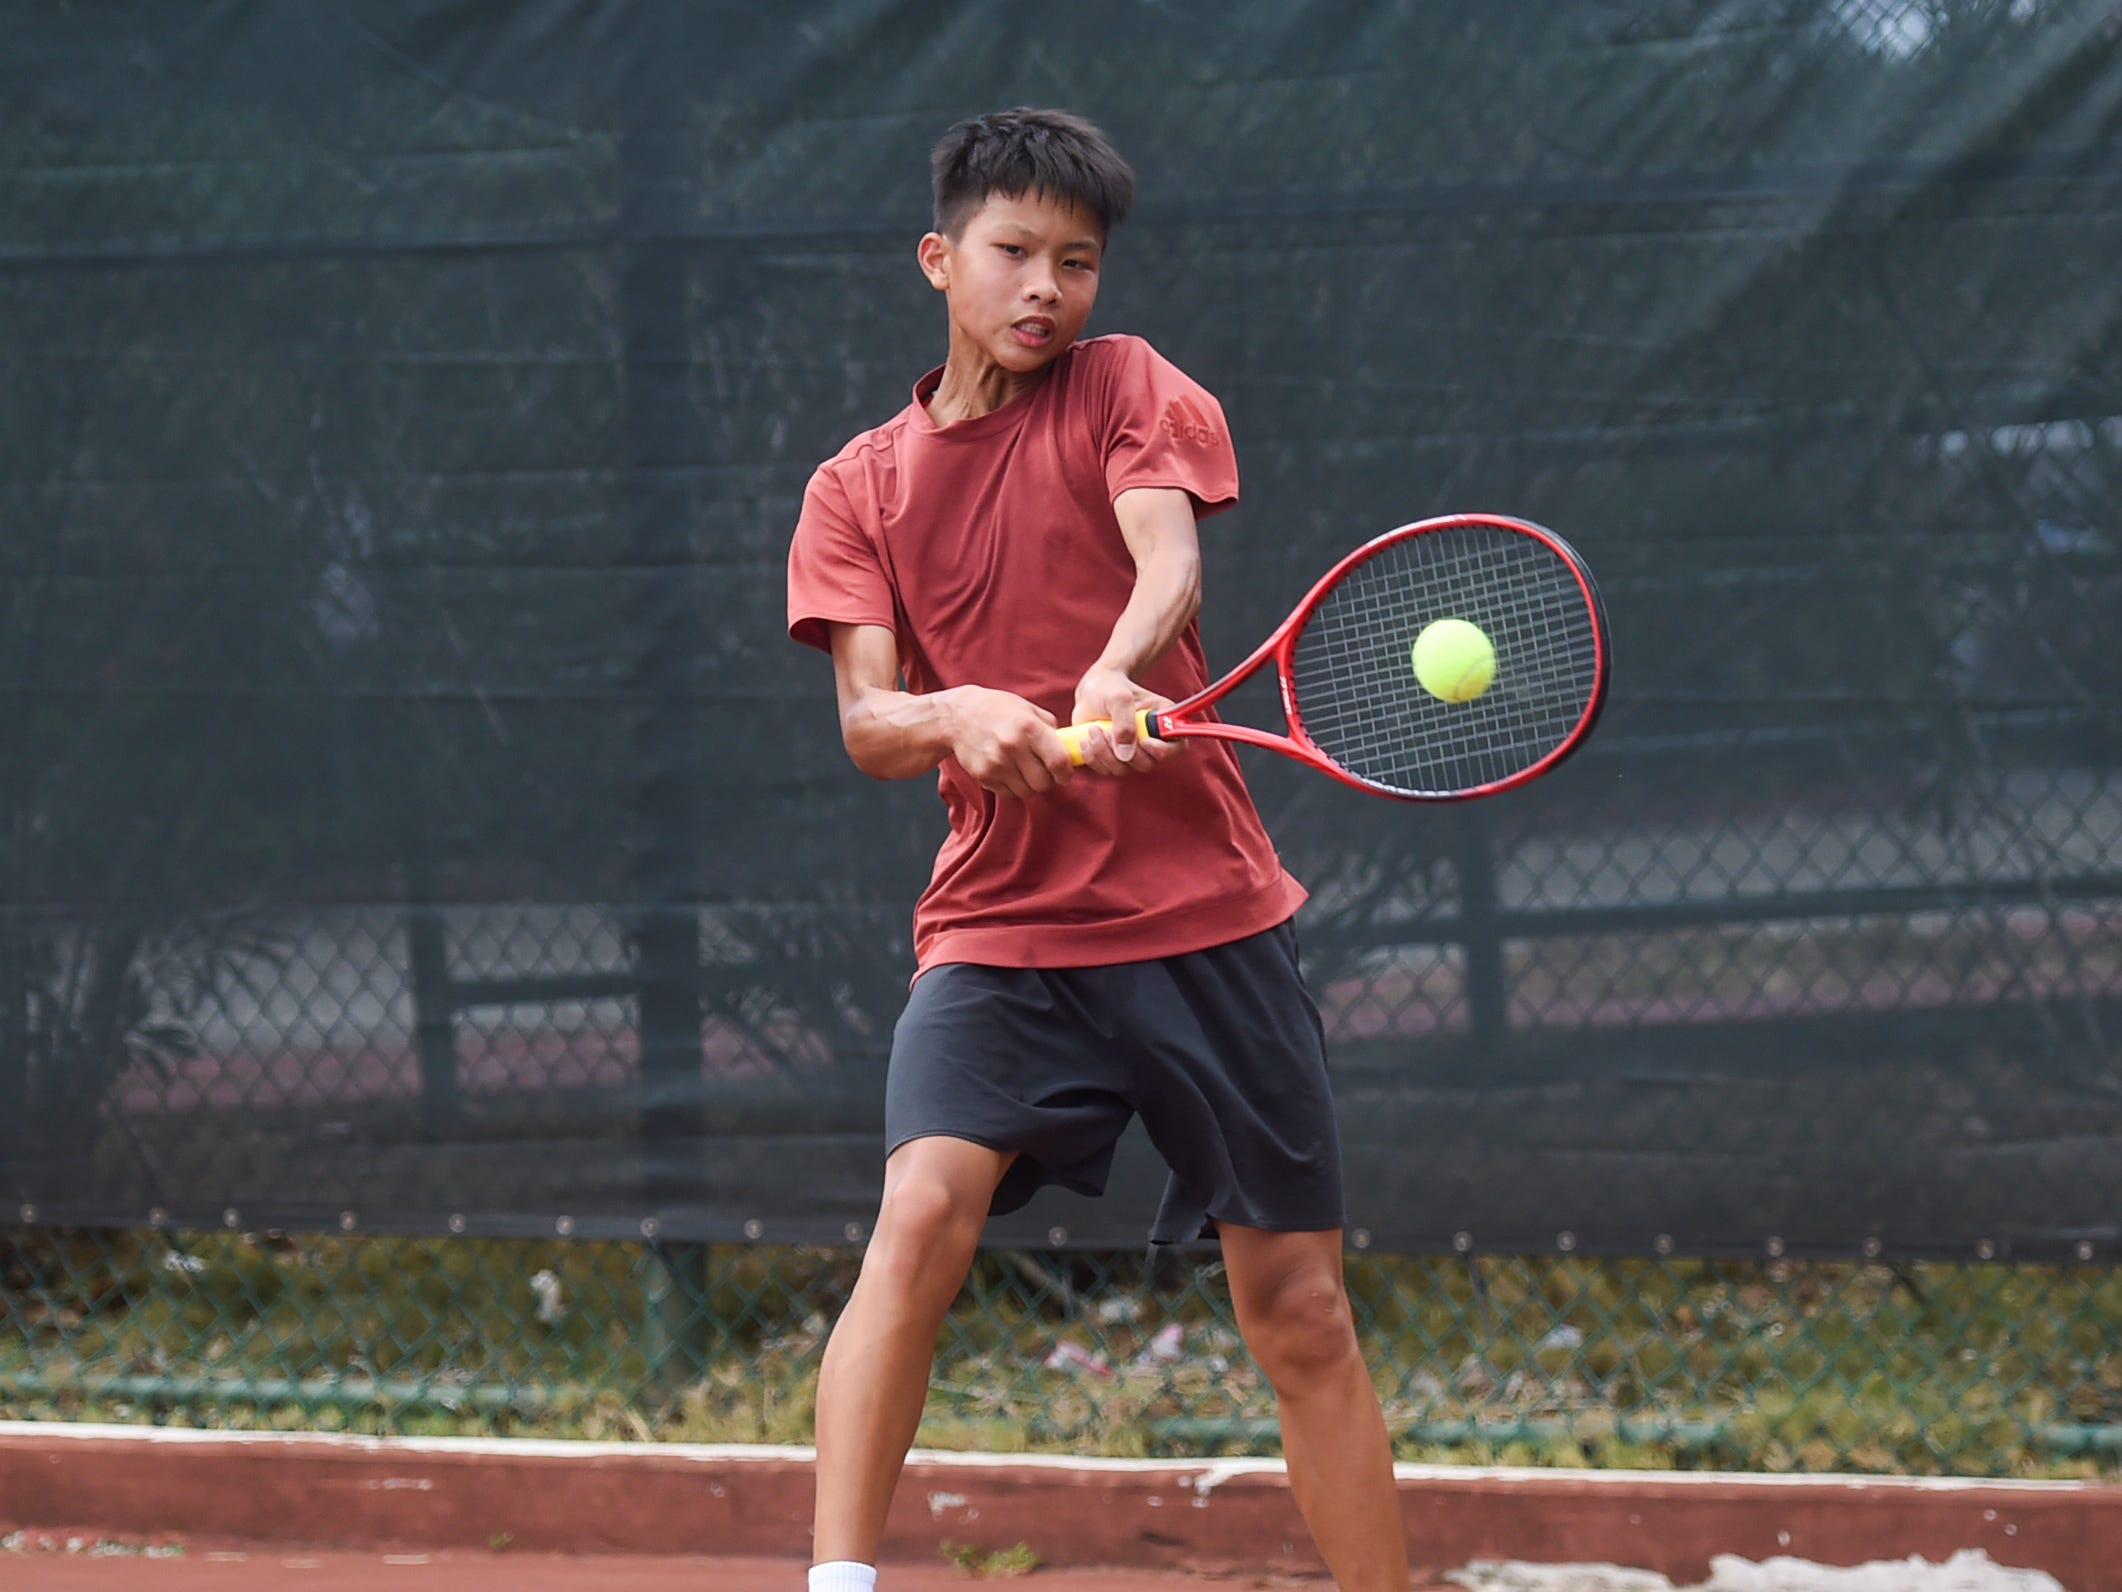 Yu-Shun Lai delivers a two-handed forehand shot during a 2019 Chuck E Cheese ITF World Tennis Tour Juniors qualifying match at the Hilton Guam Resort and Spa in Tumon, May 12, 2019.